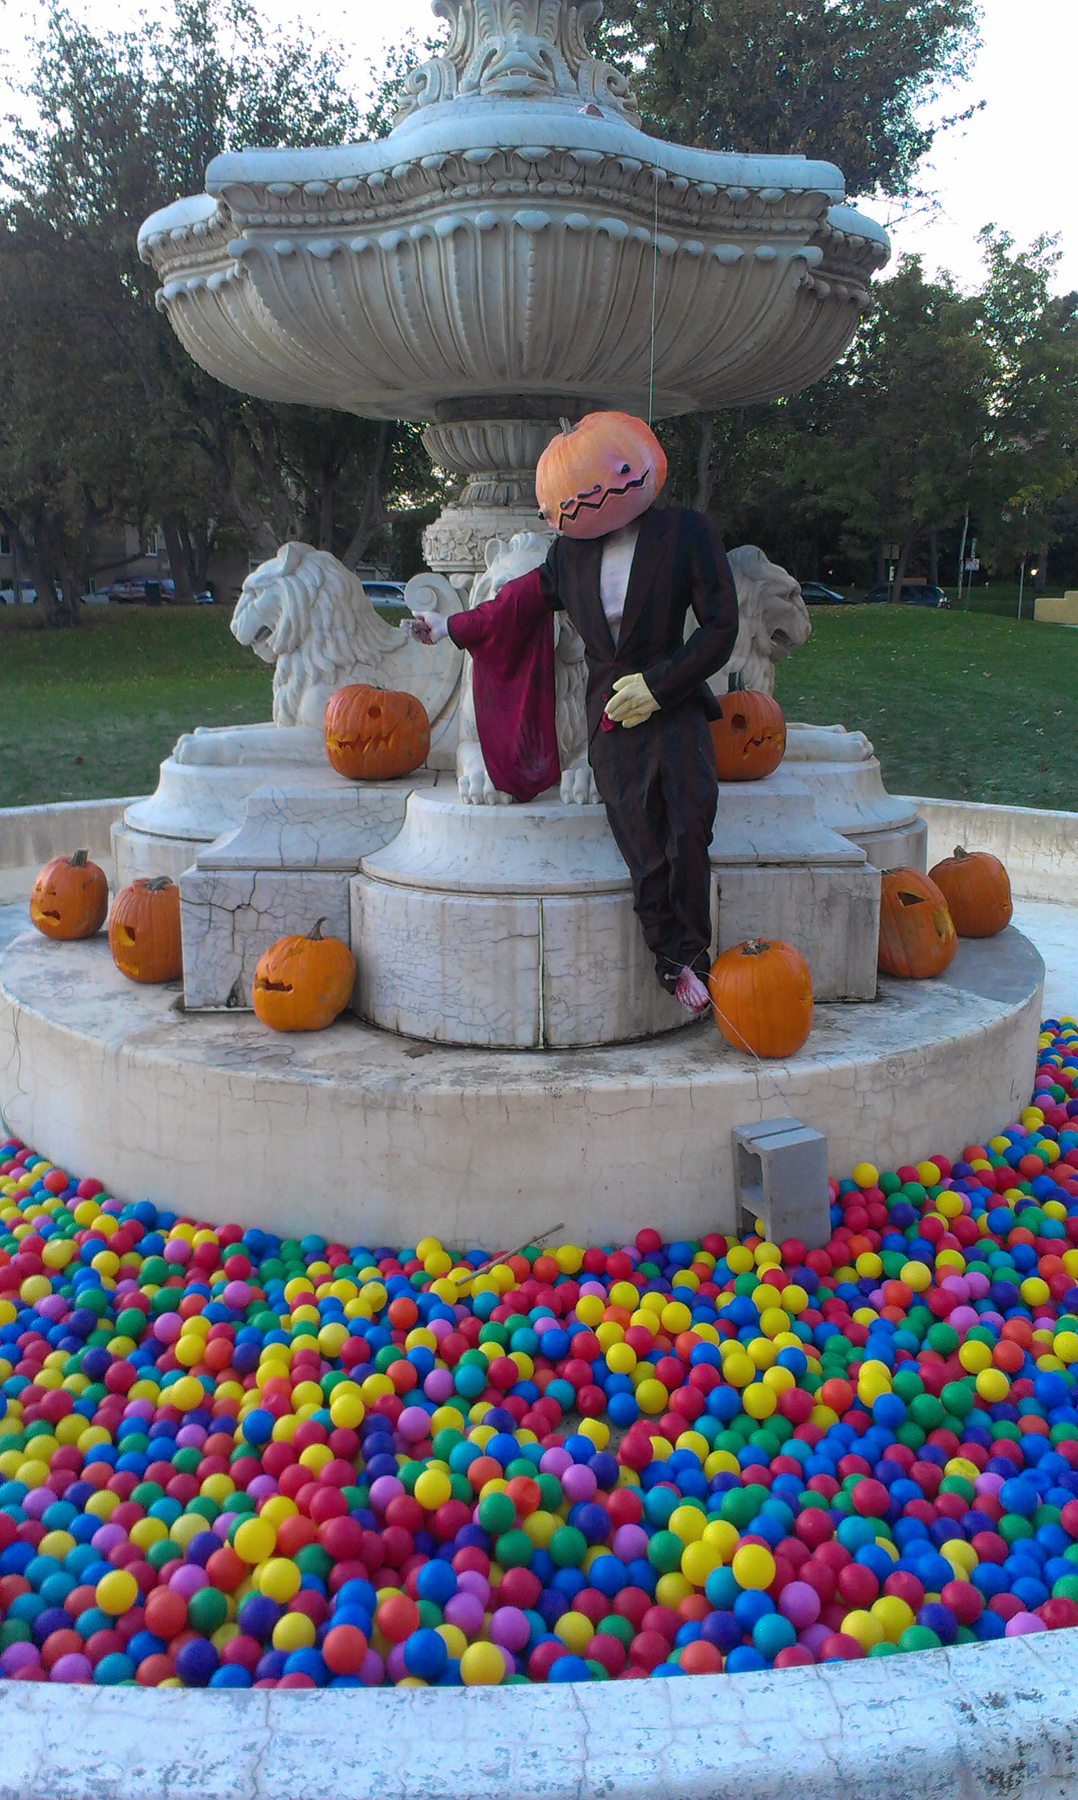 Halloween fountain installation in Hungarian Freedom Park, Denver. Image courtesy of The Impossible Winterbourne.